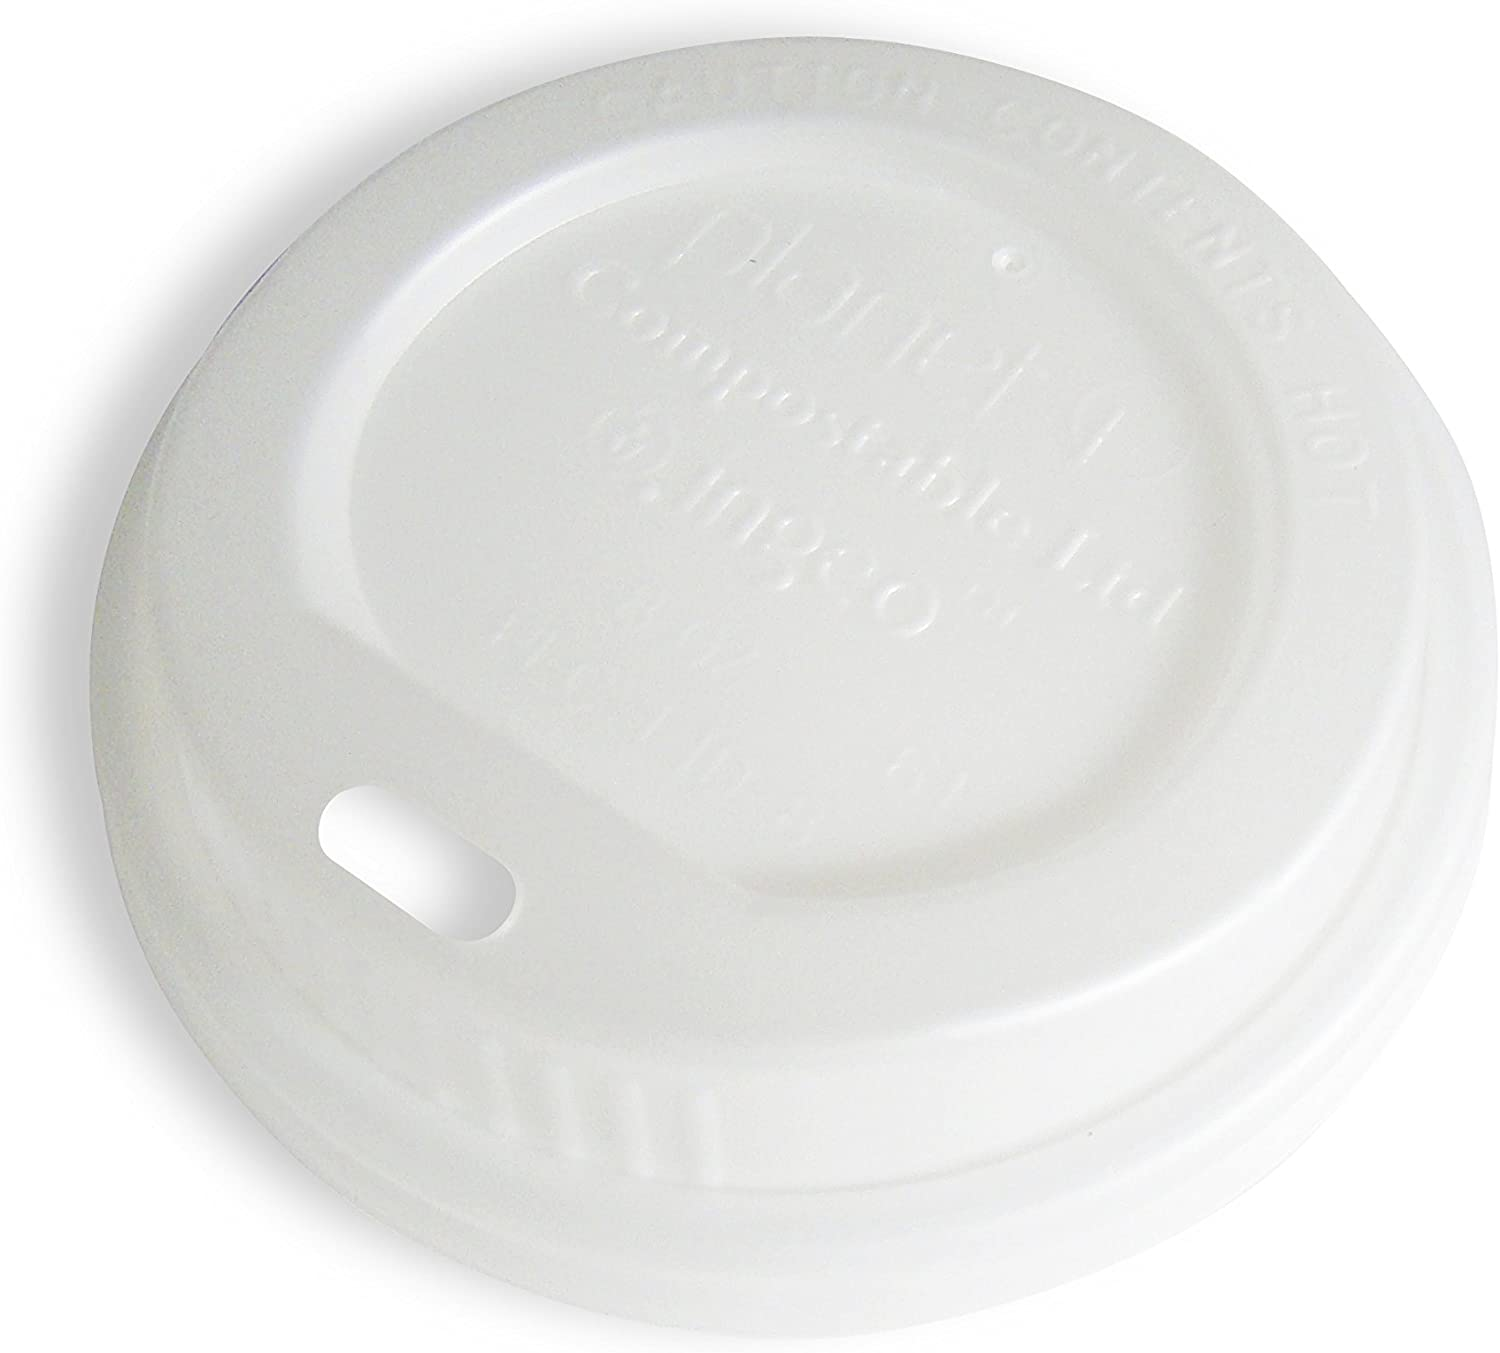 Planet+ 2021 new 100% Compostable PLA Hot outlet Cup 8oz Single-Wall Lid a Fits